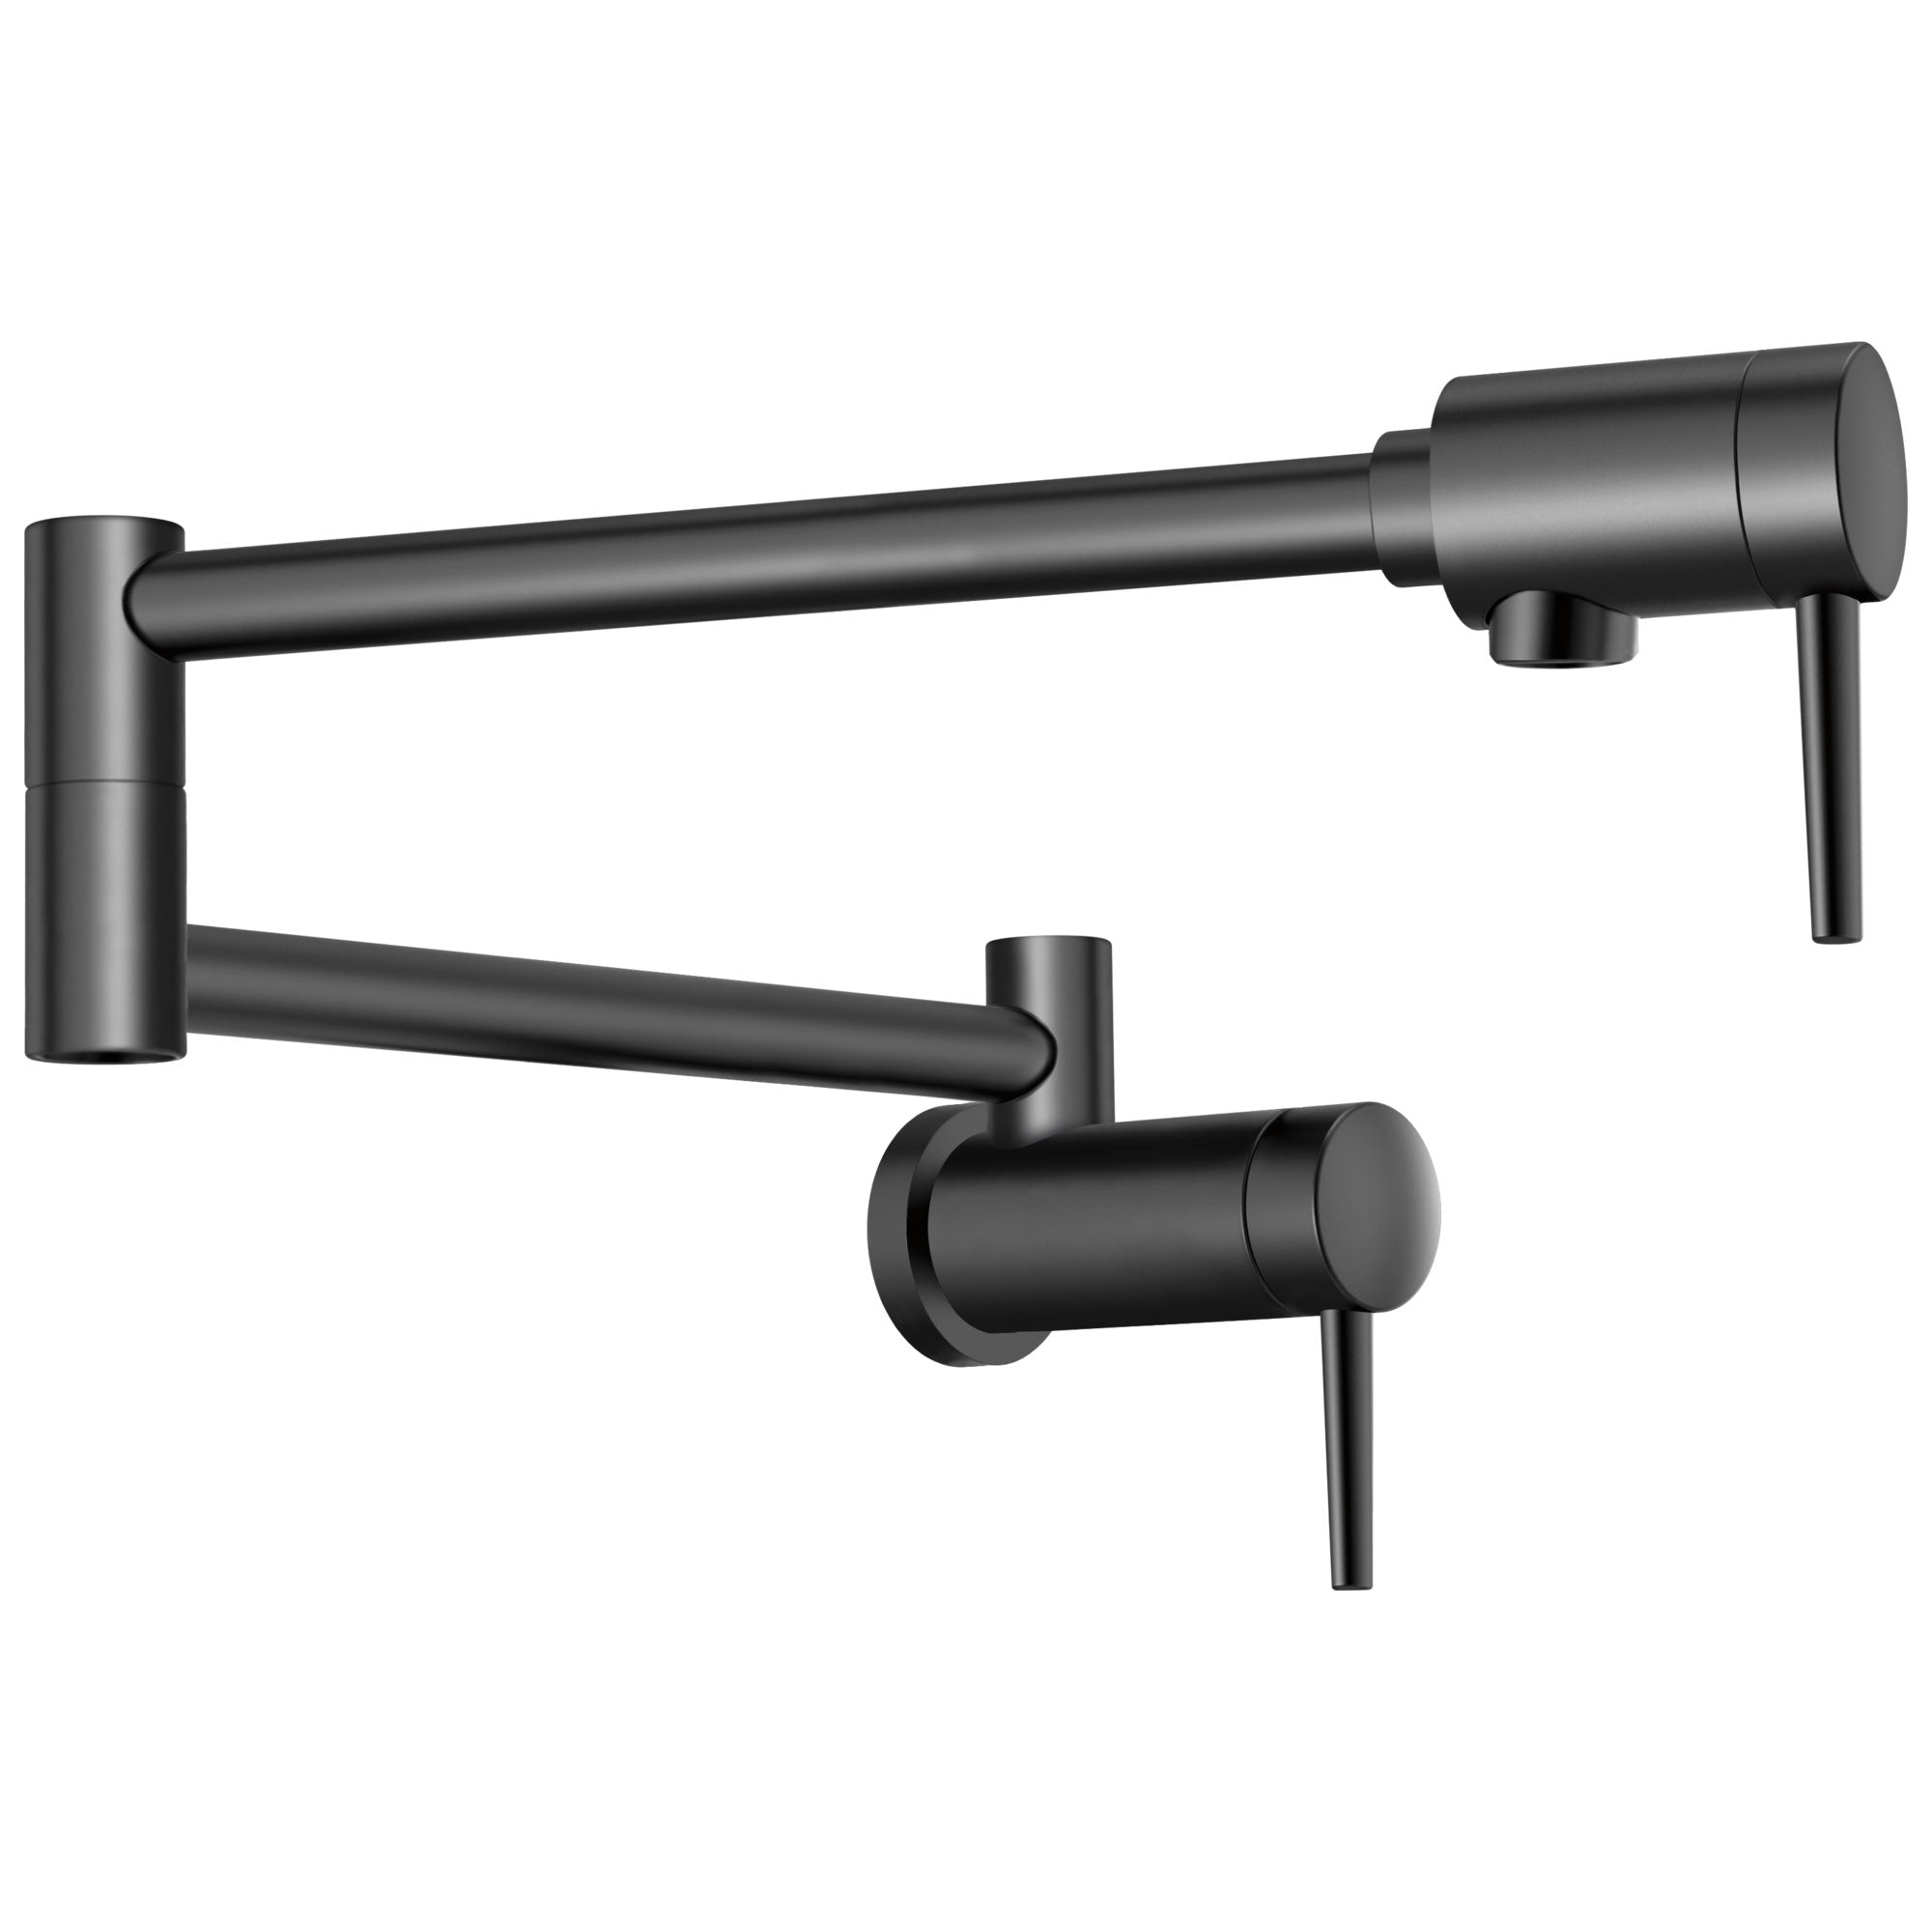 Delta Contemporary Matte Black Finish Contemporary Wall Mount Pot Filler Faucet D1165LFBL